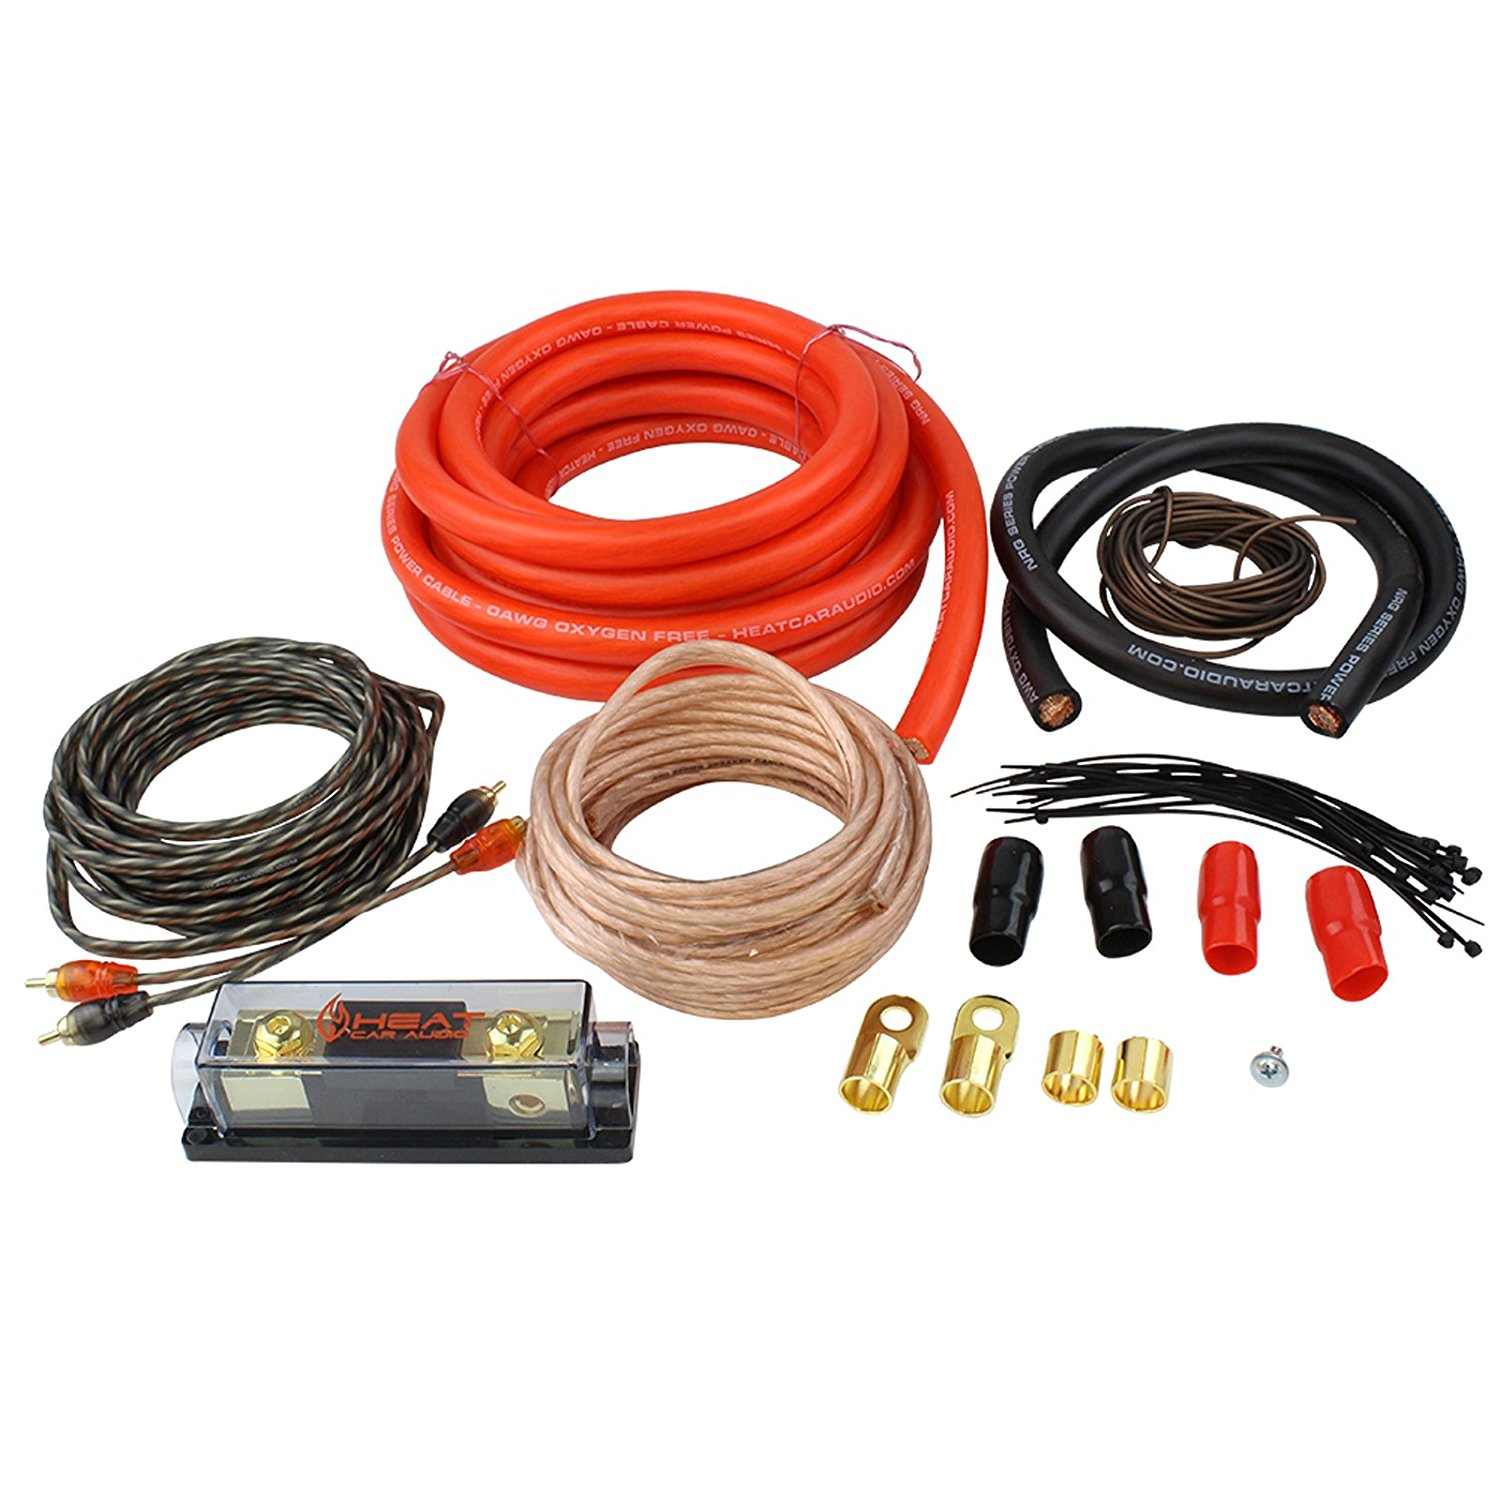 Cheap Nrg Car Find Deals On Line At Alibabacom 0 Gauge Wiring Kit Get Quotations 1 Amplifier Amp Power Installation 100 Ofc Wire Kit0nrg